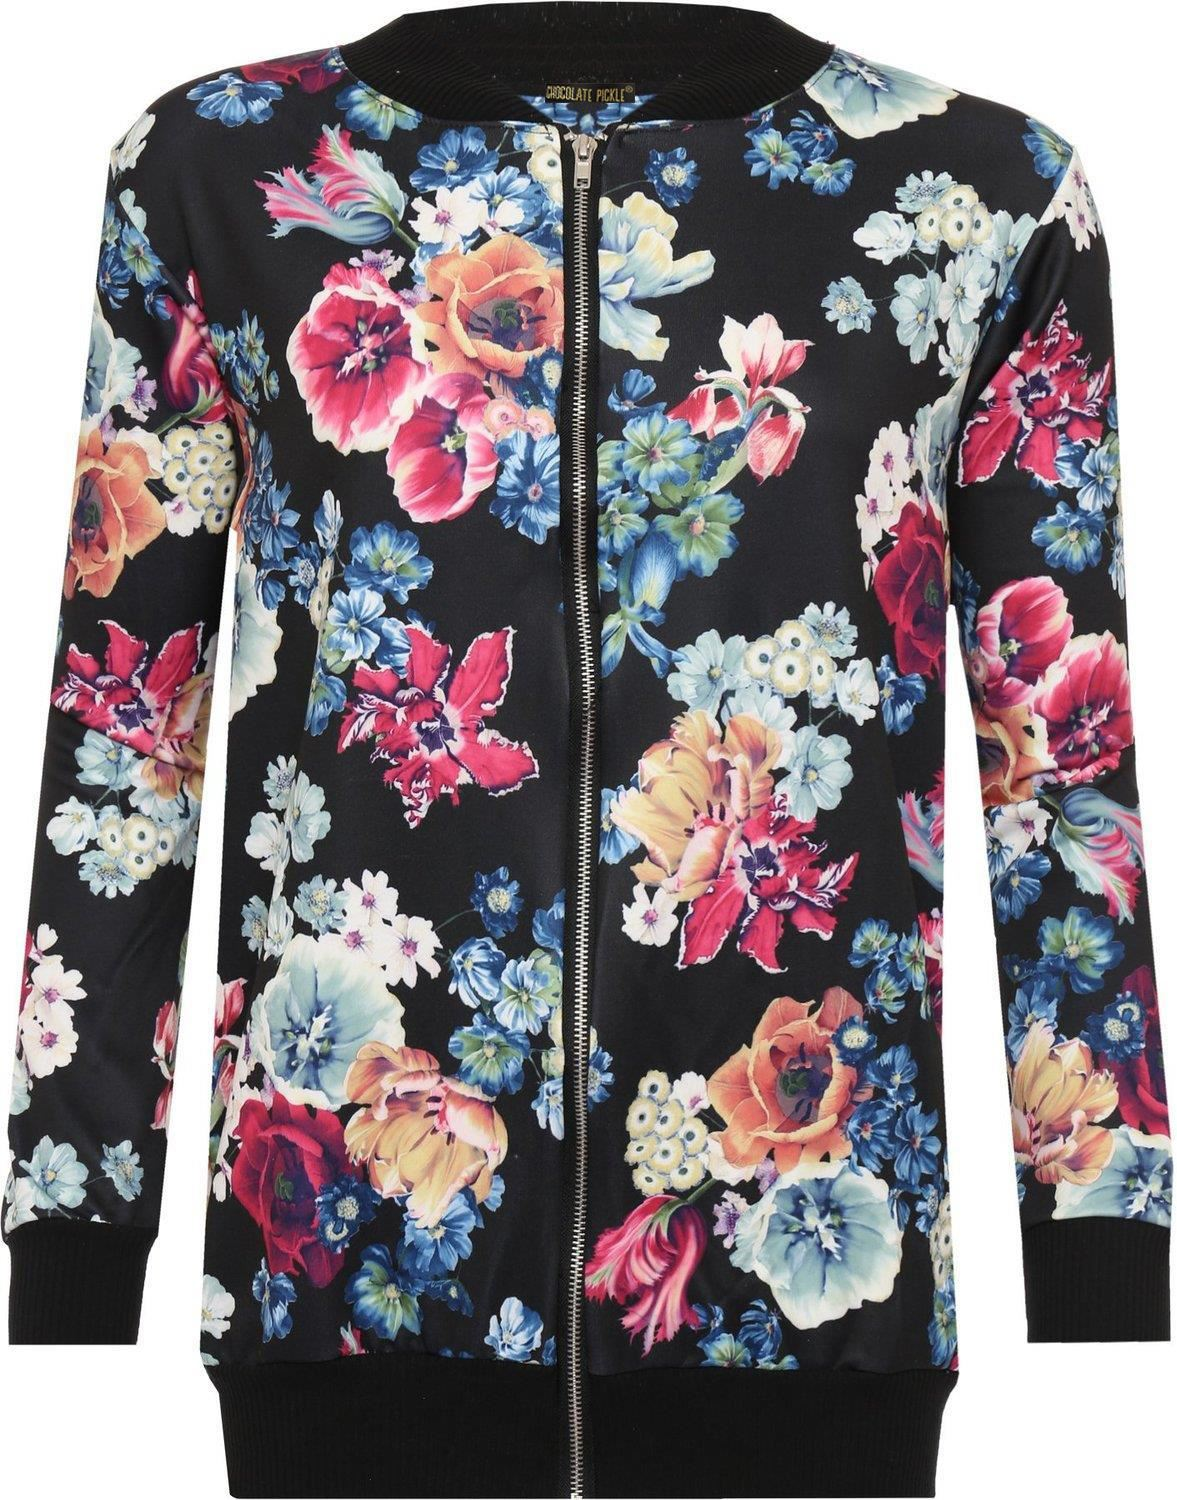 New Womens Plus Floral Print Crew Neck Waist Band Bomber Jackets 14-28